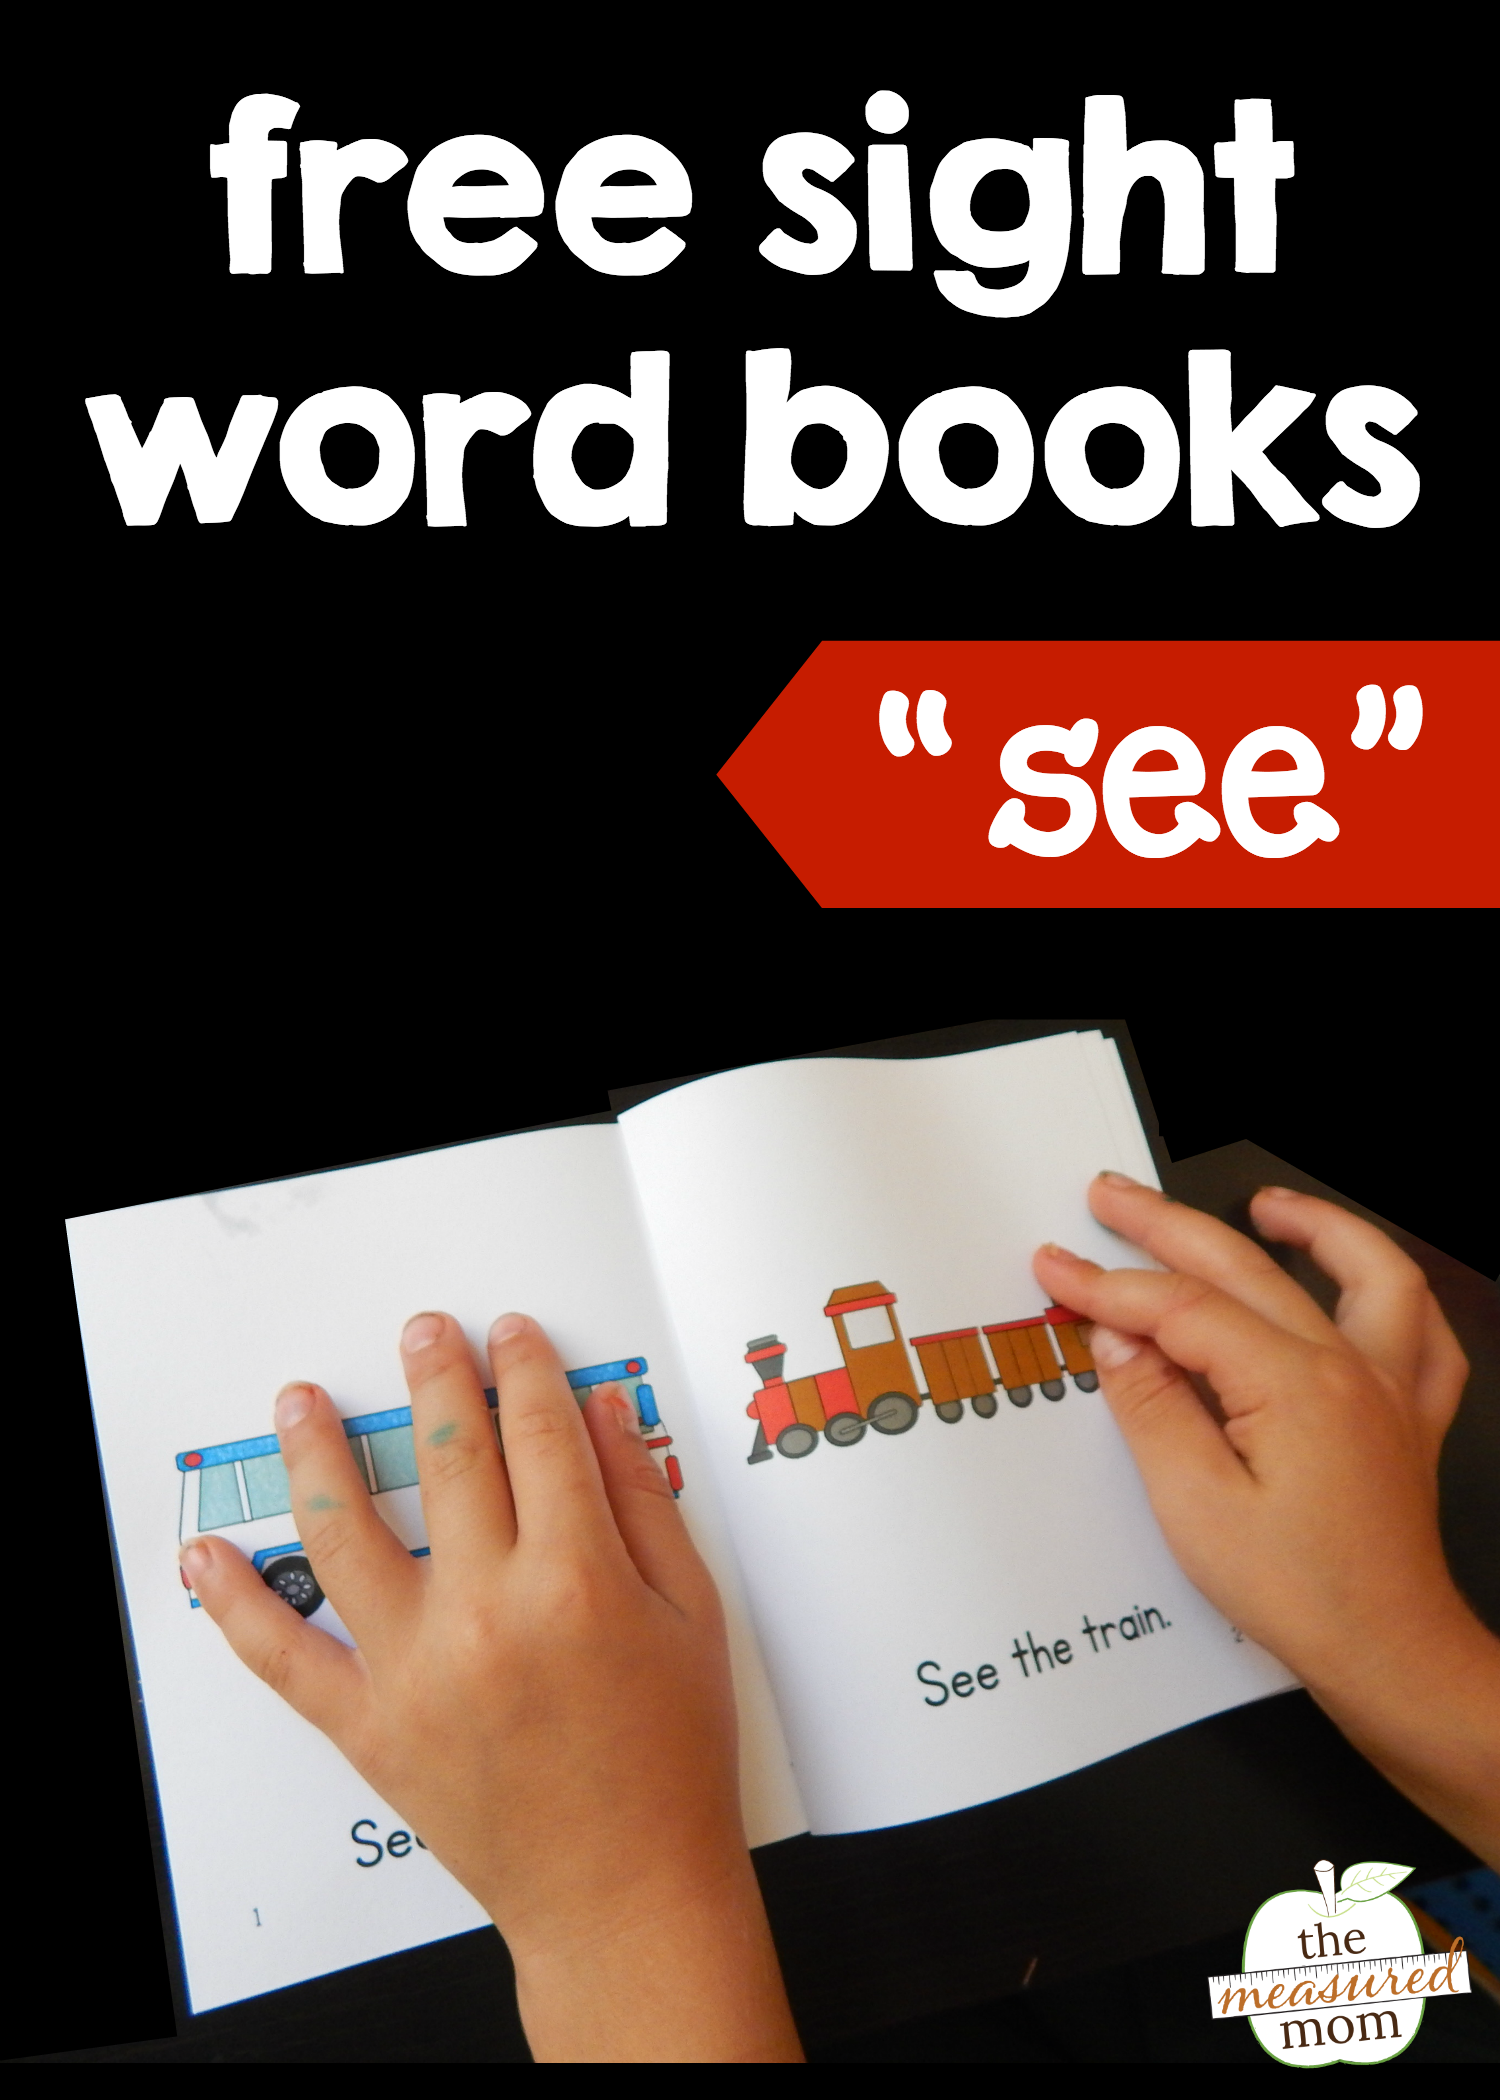 Teach The Sight Word See With Four Free Books